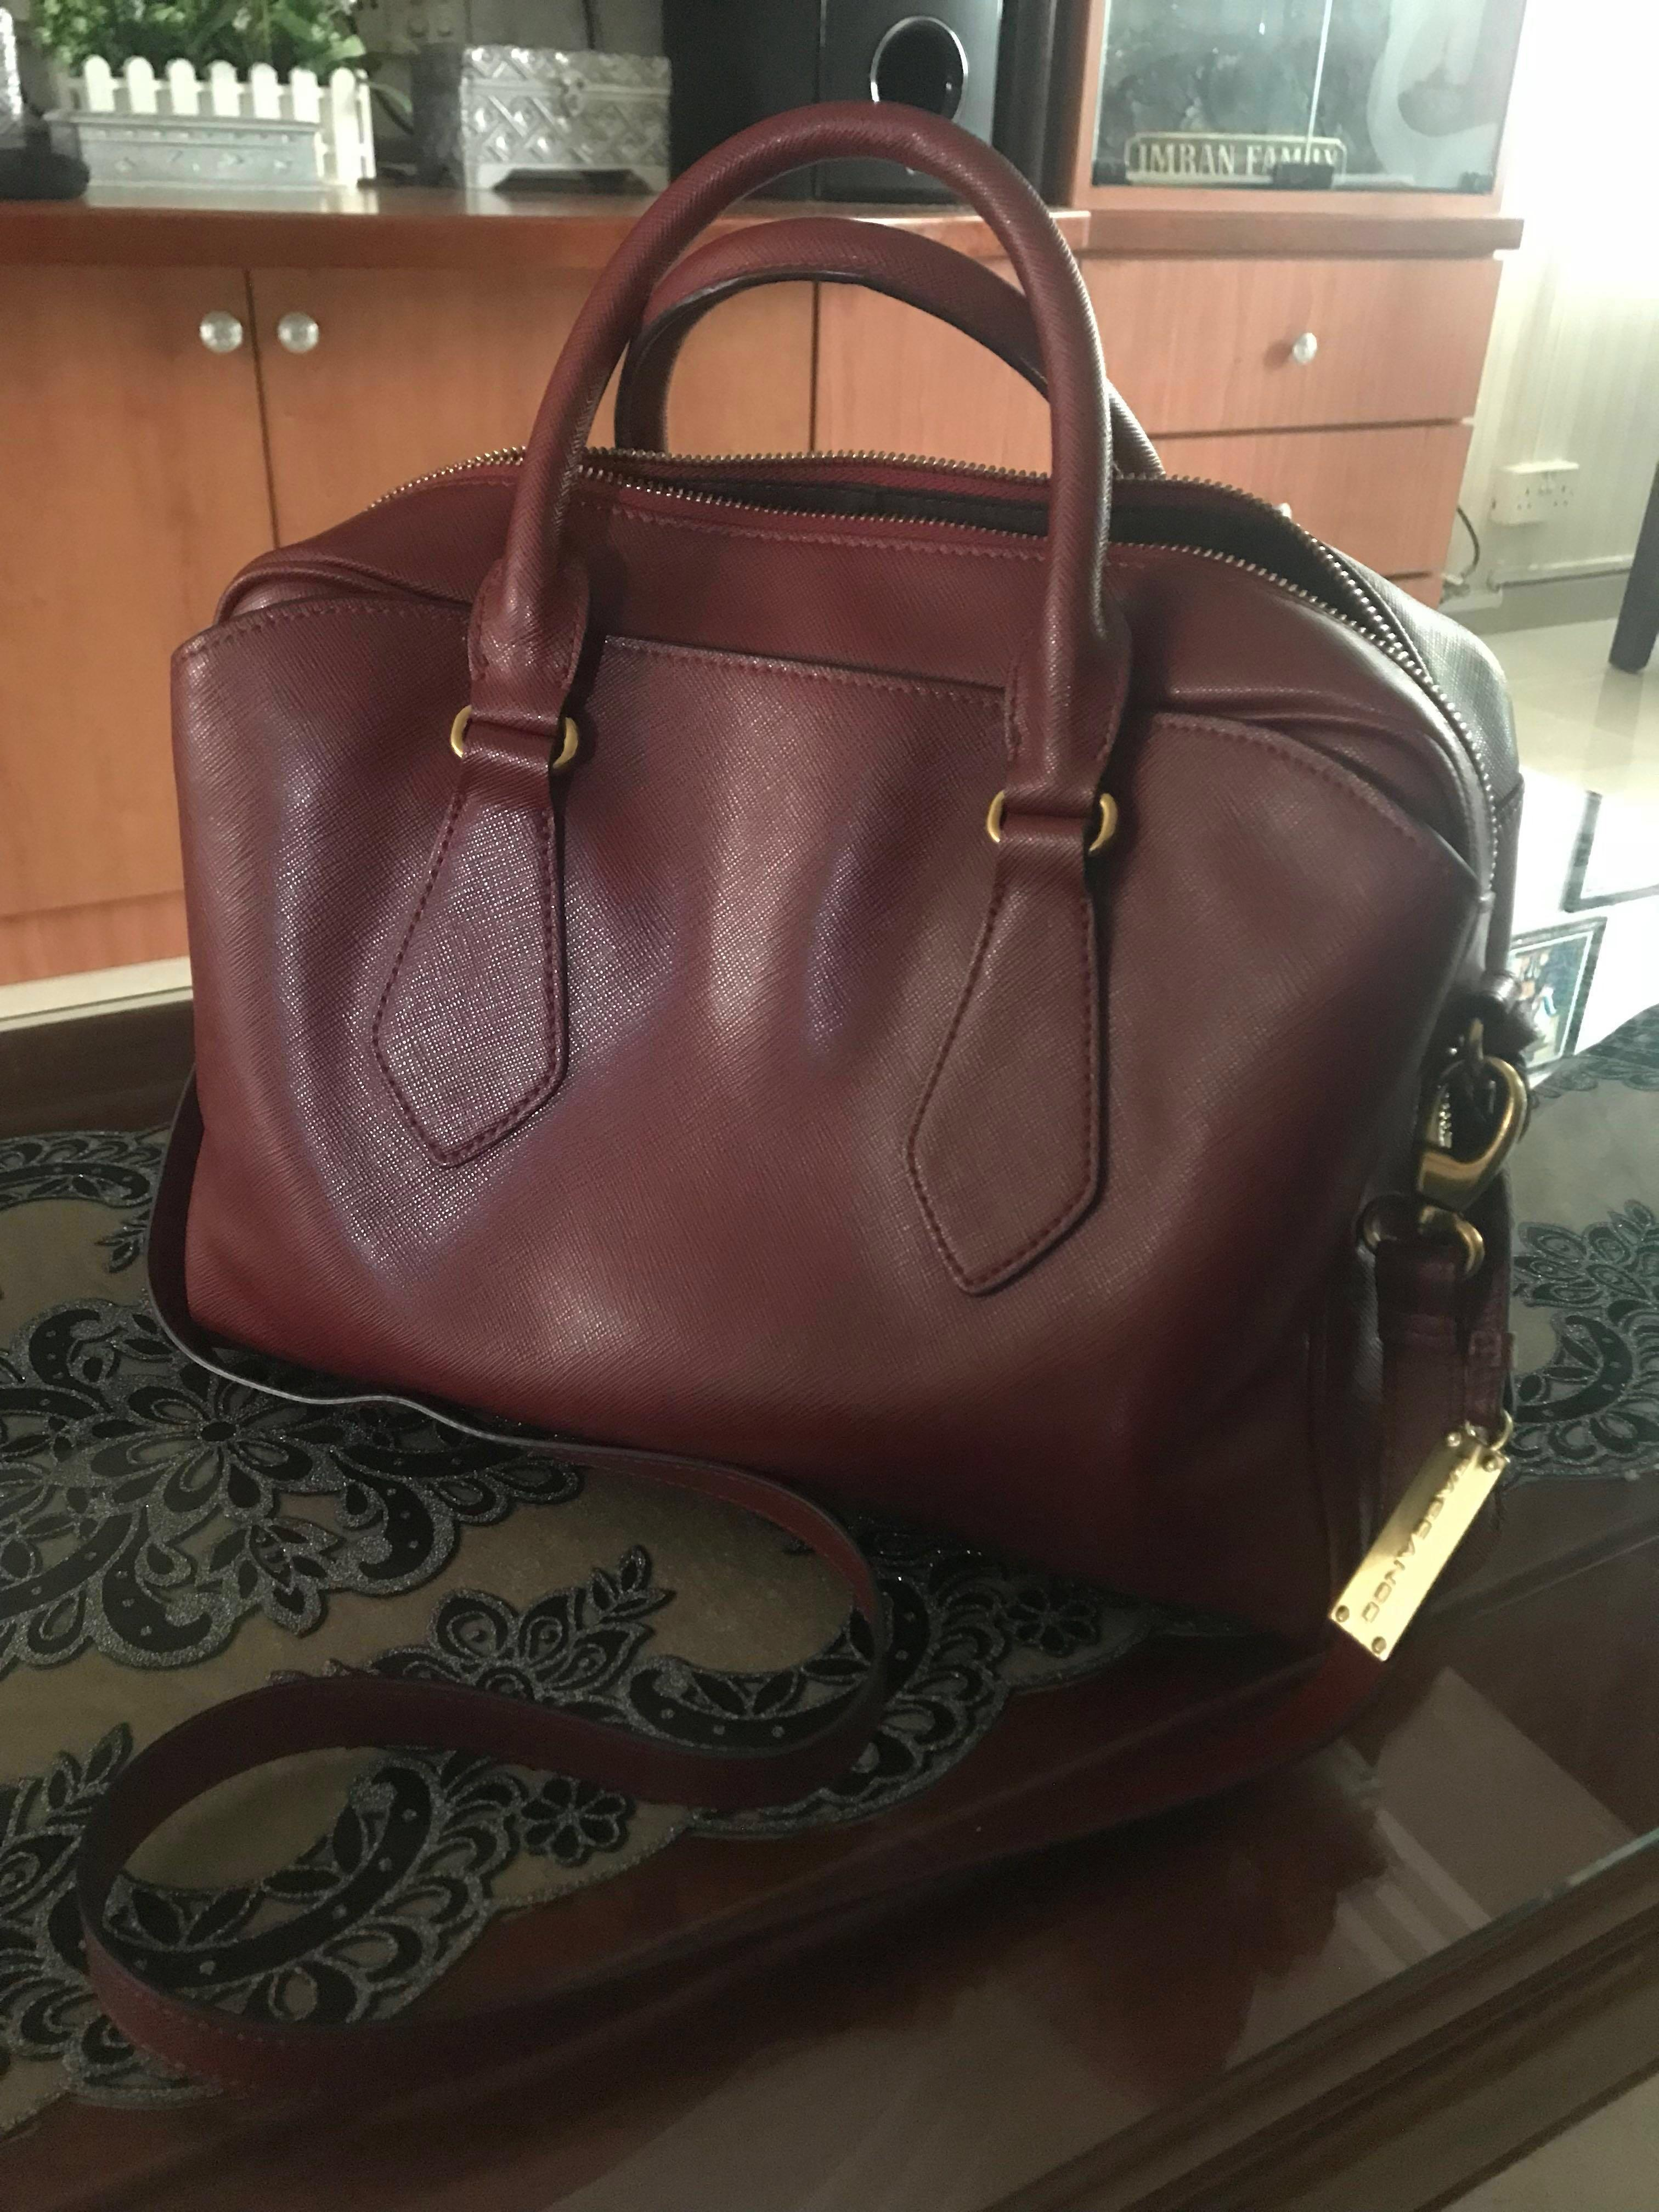 RABEANCO - Ion Orchard  Sling back A4 size, Luxury, Bags